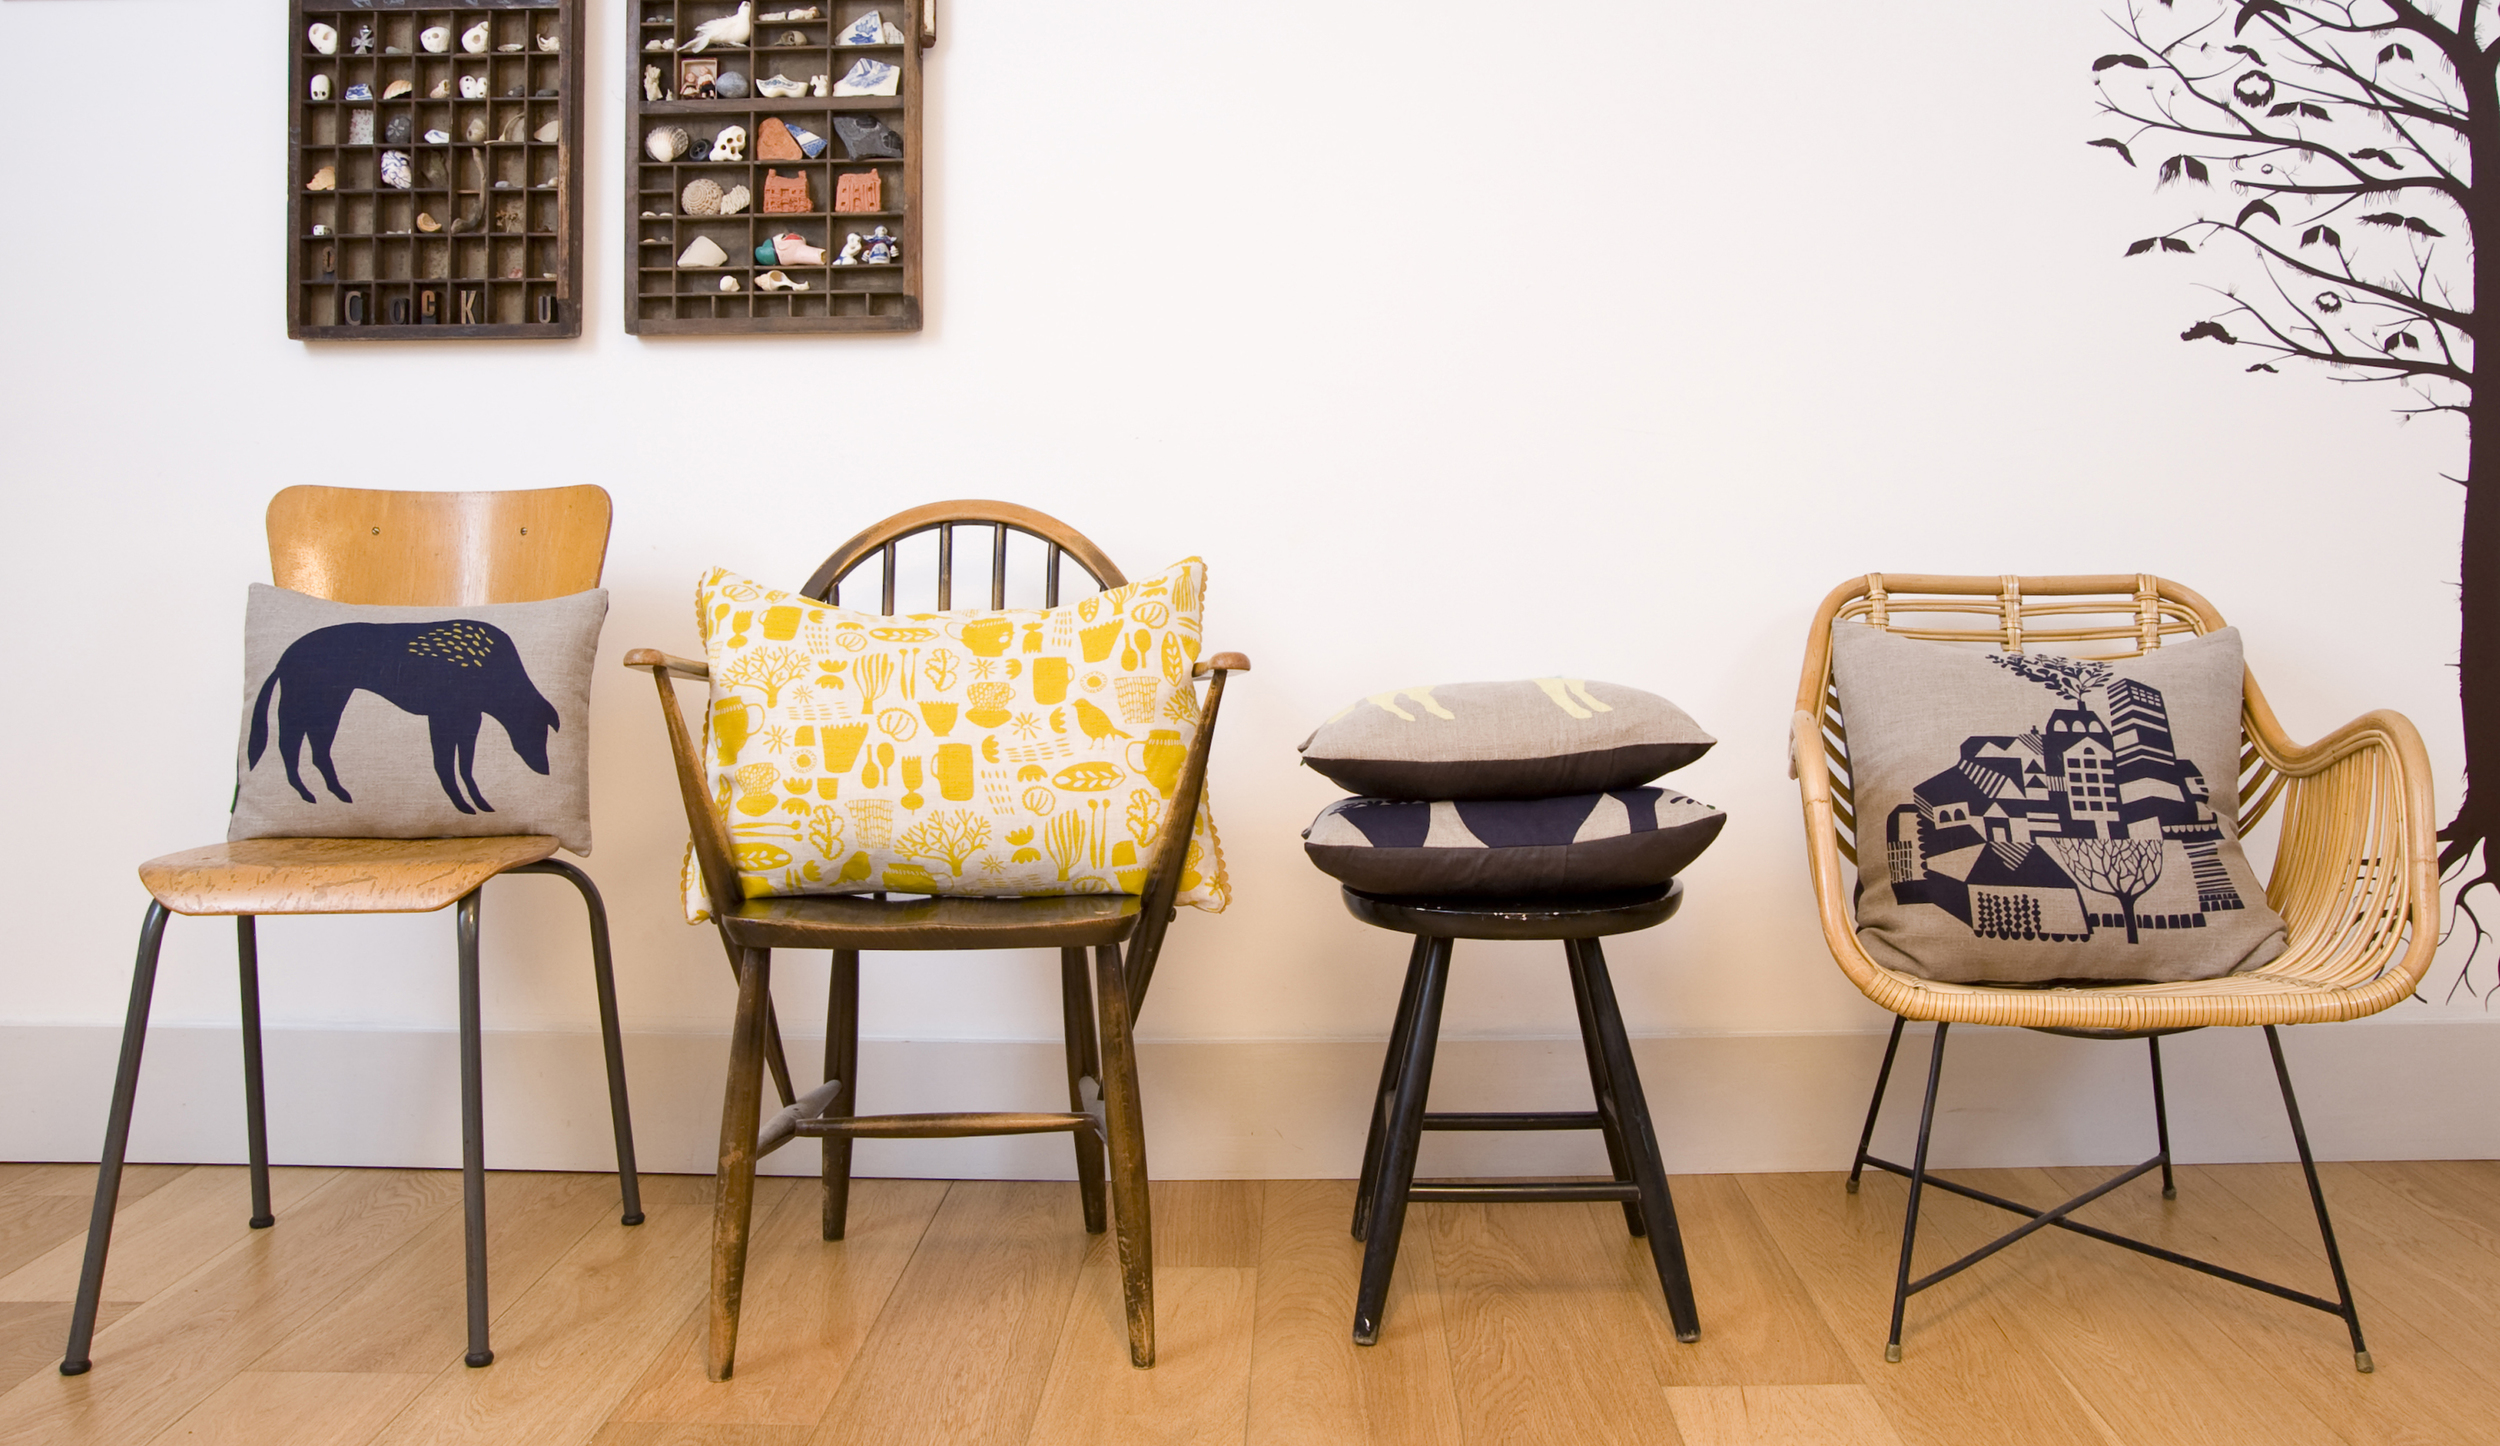 Cushions+chairs Maxine Sutton(1)